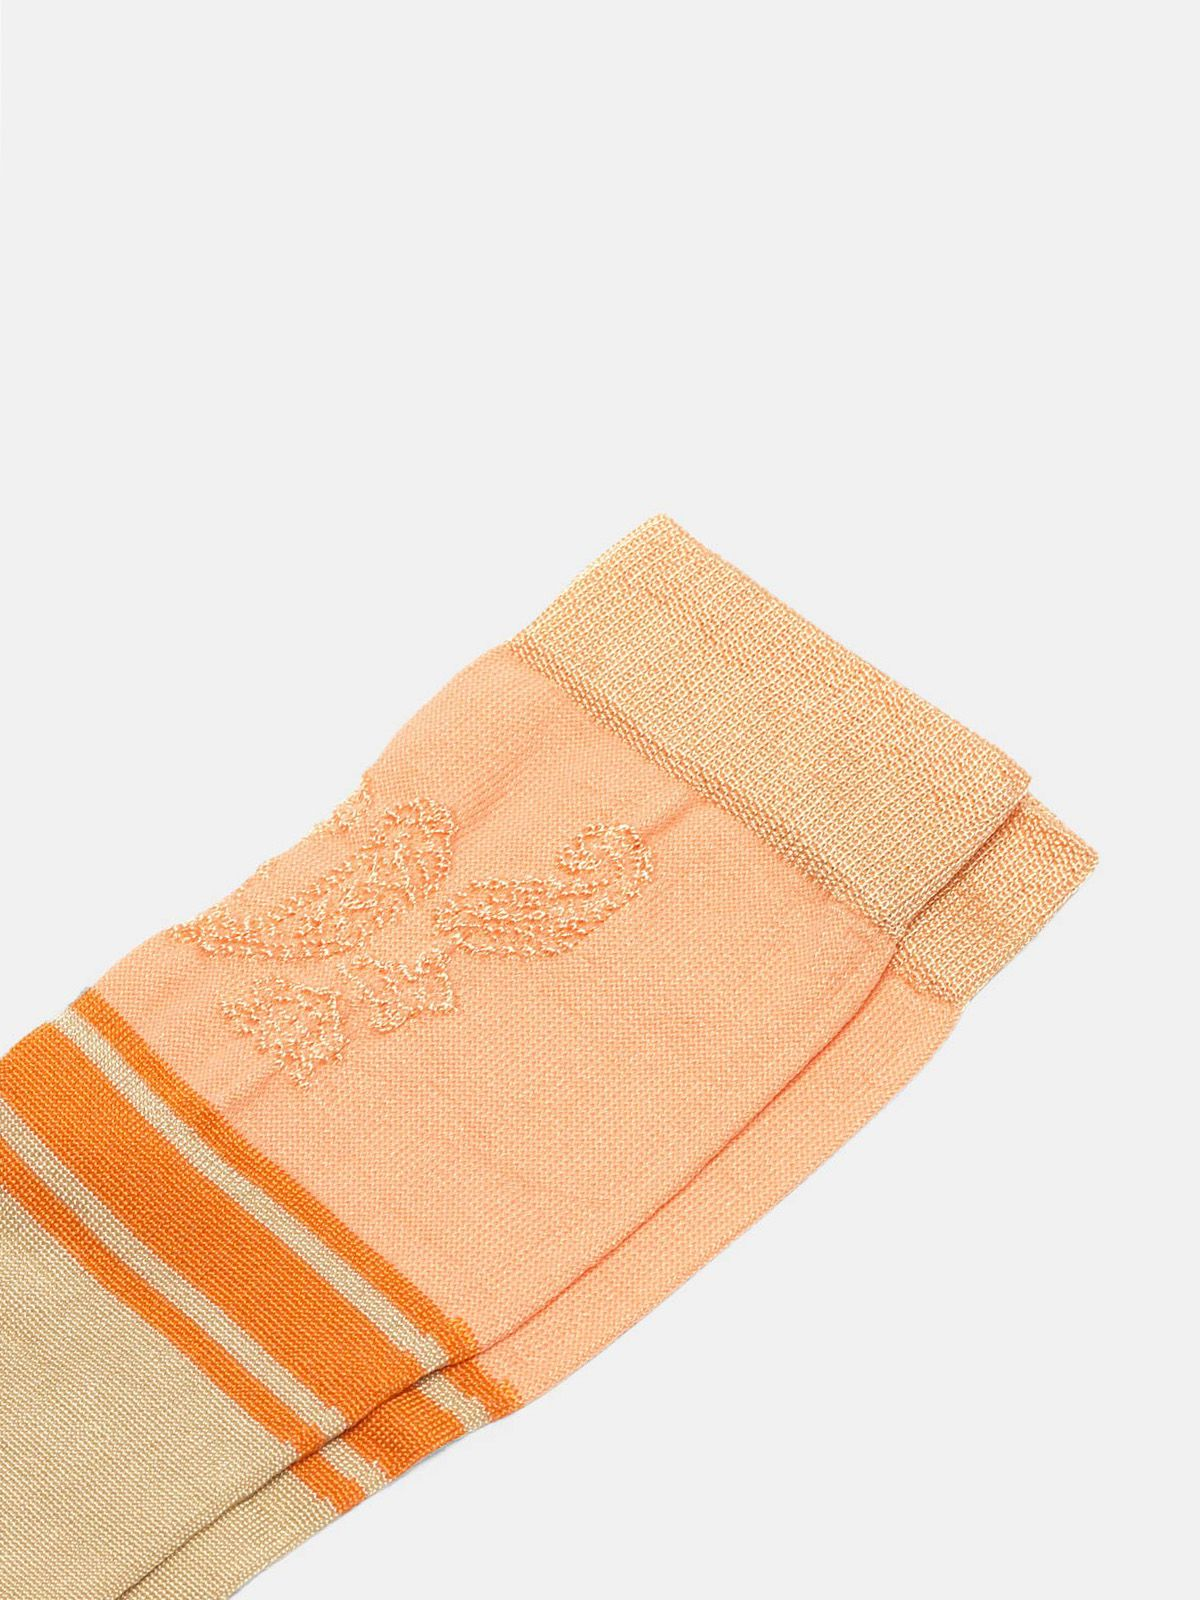 Golden Goose - Peach Addison socks with jacquard pattern in